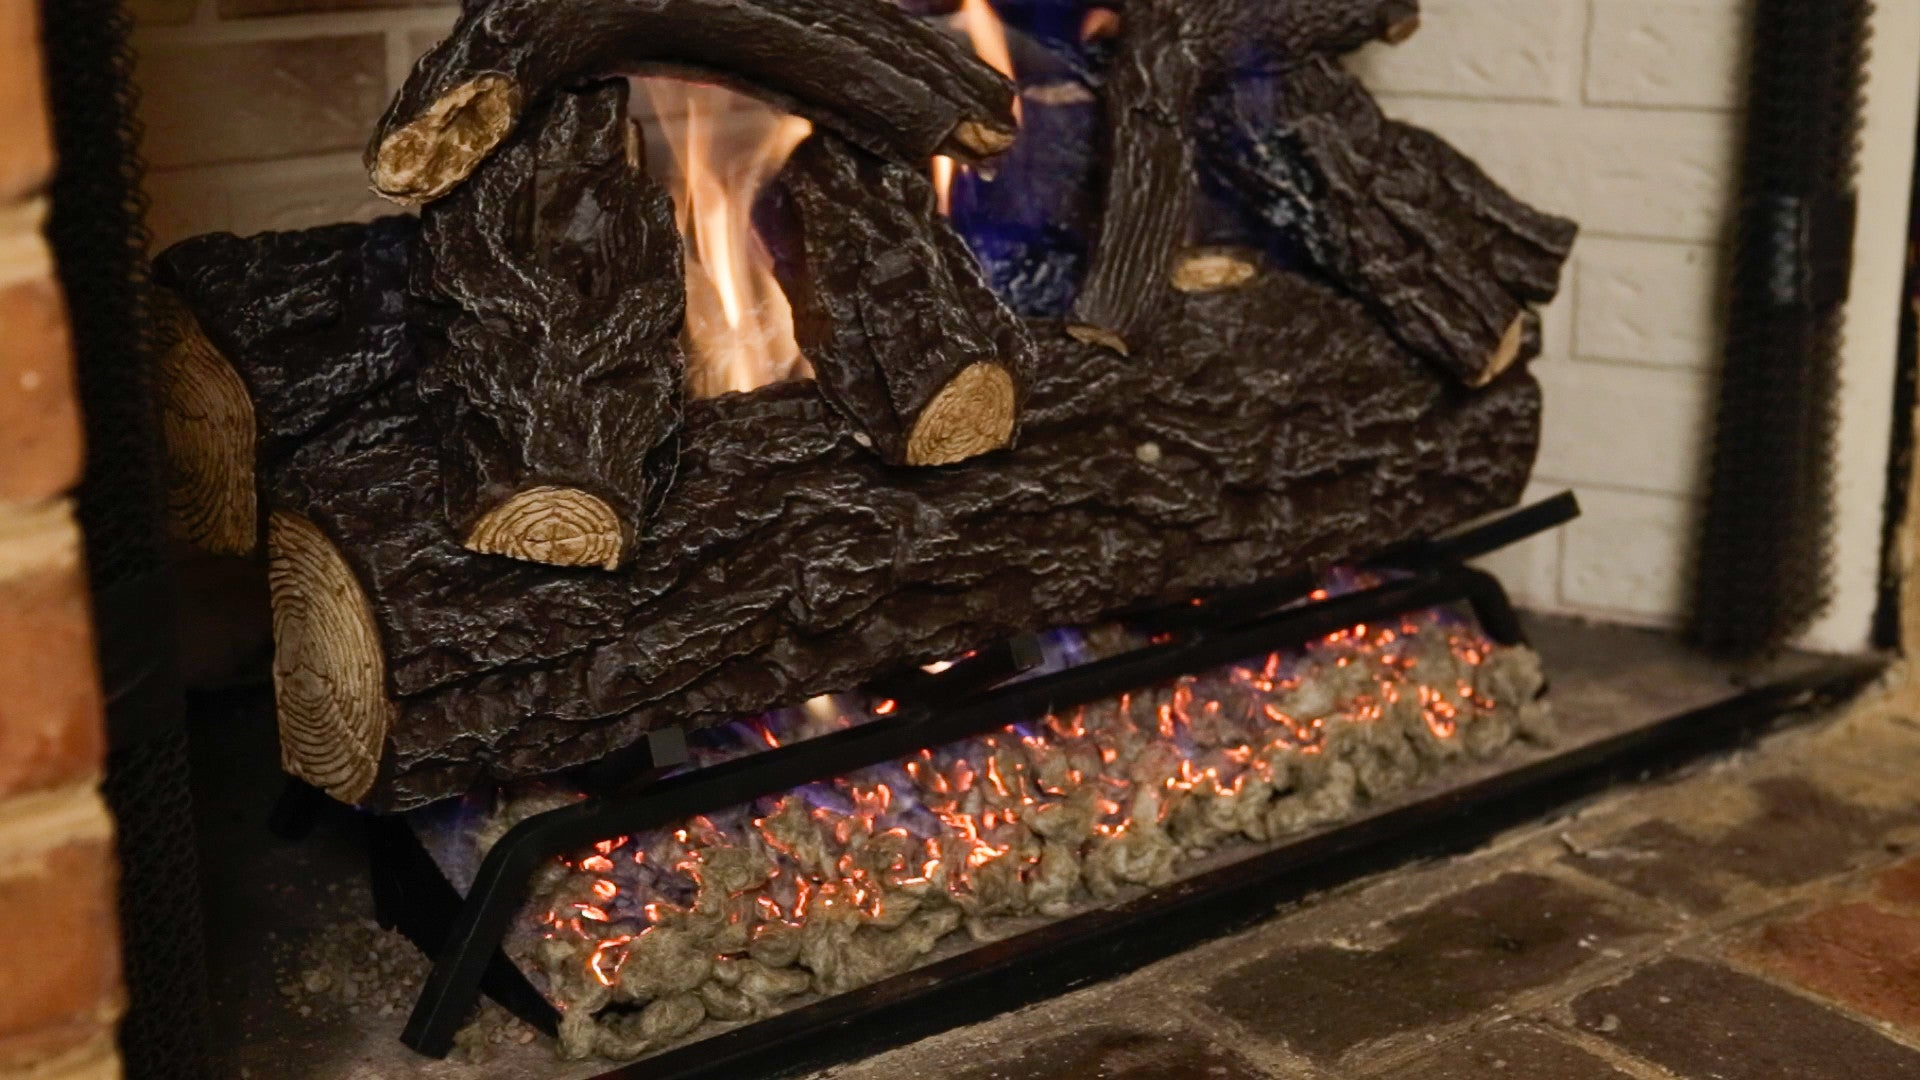 vented gas log fireplace glowing embers emberside